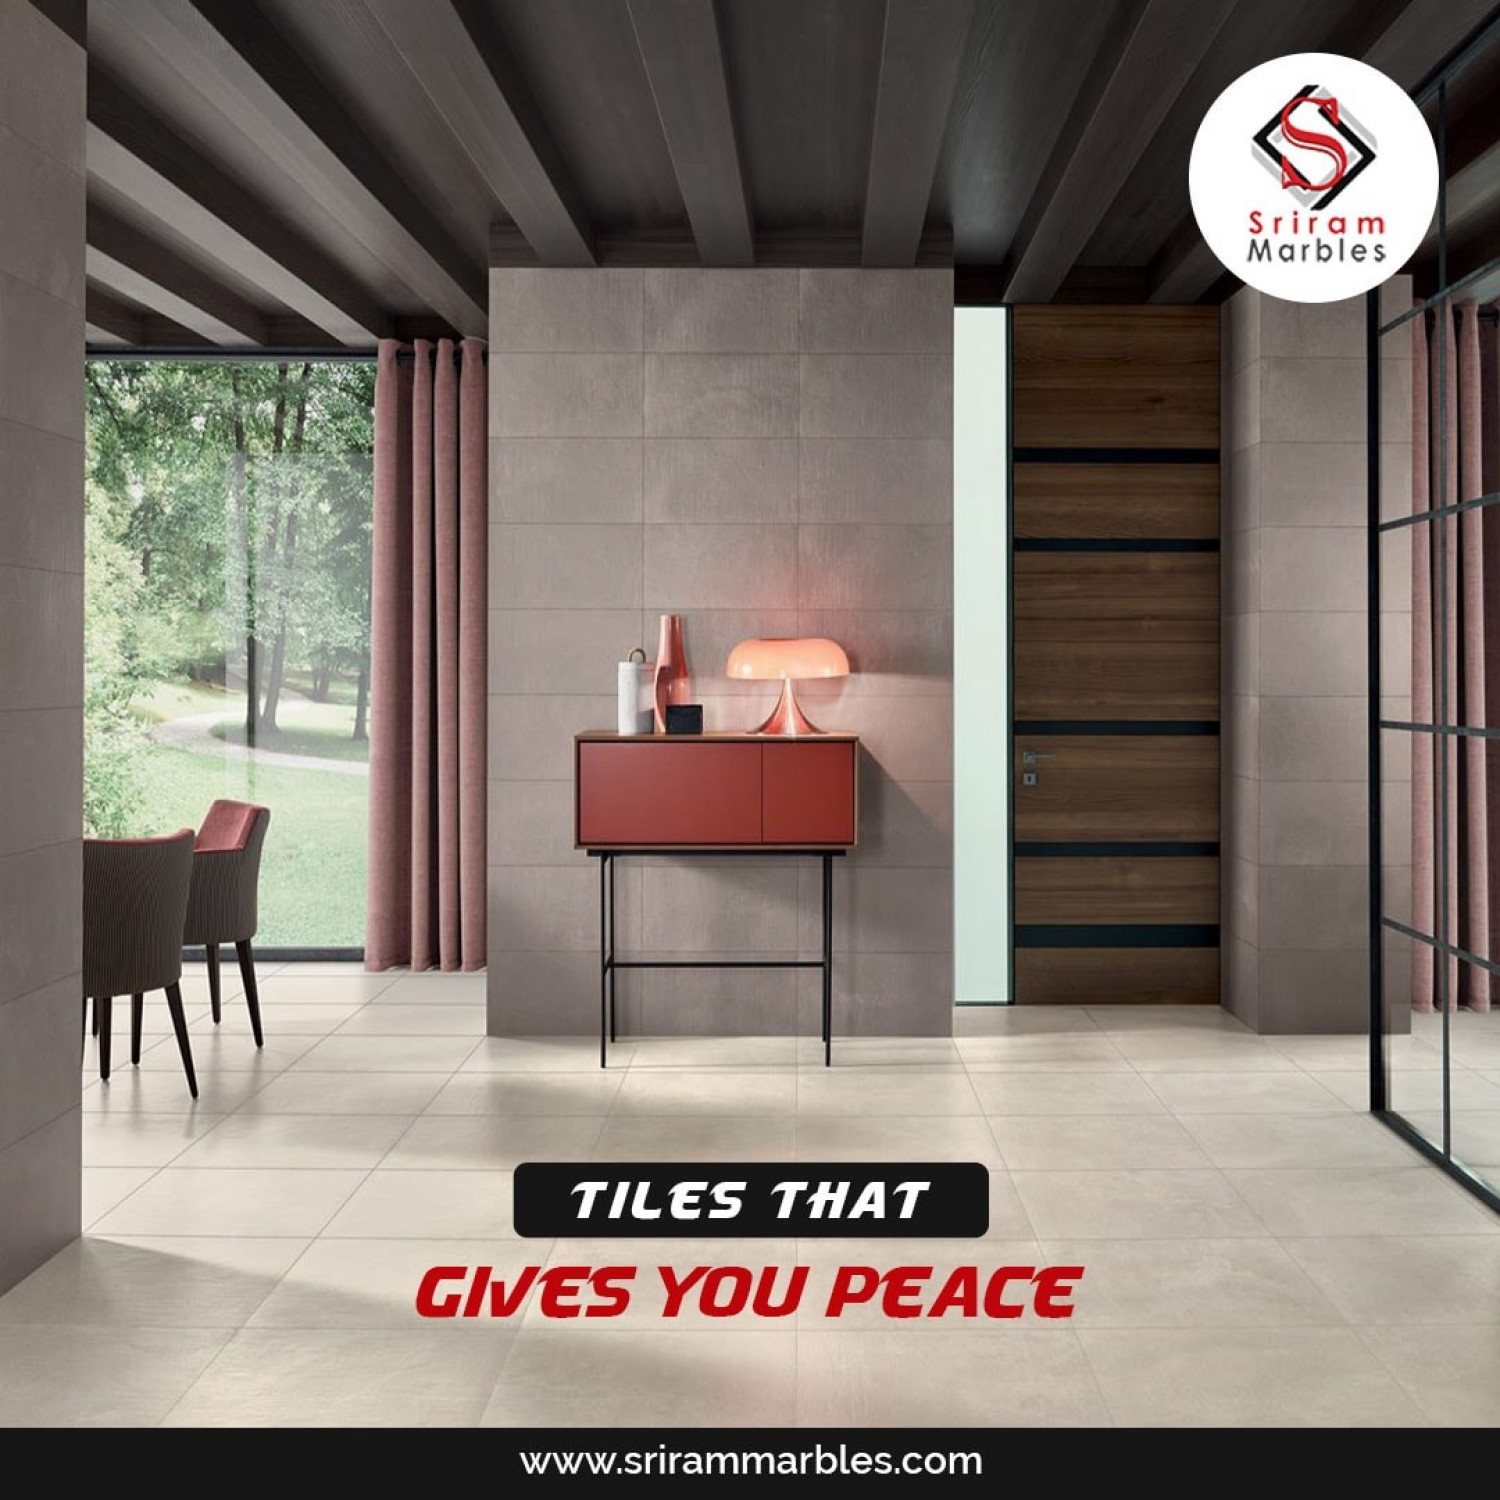 Best wall tile in gorakhpur | sriram marbles in gorakhpur Infographic